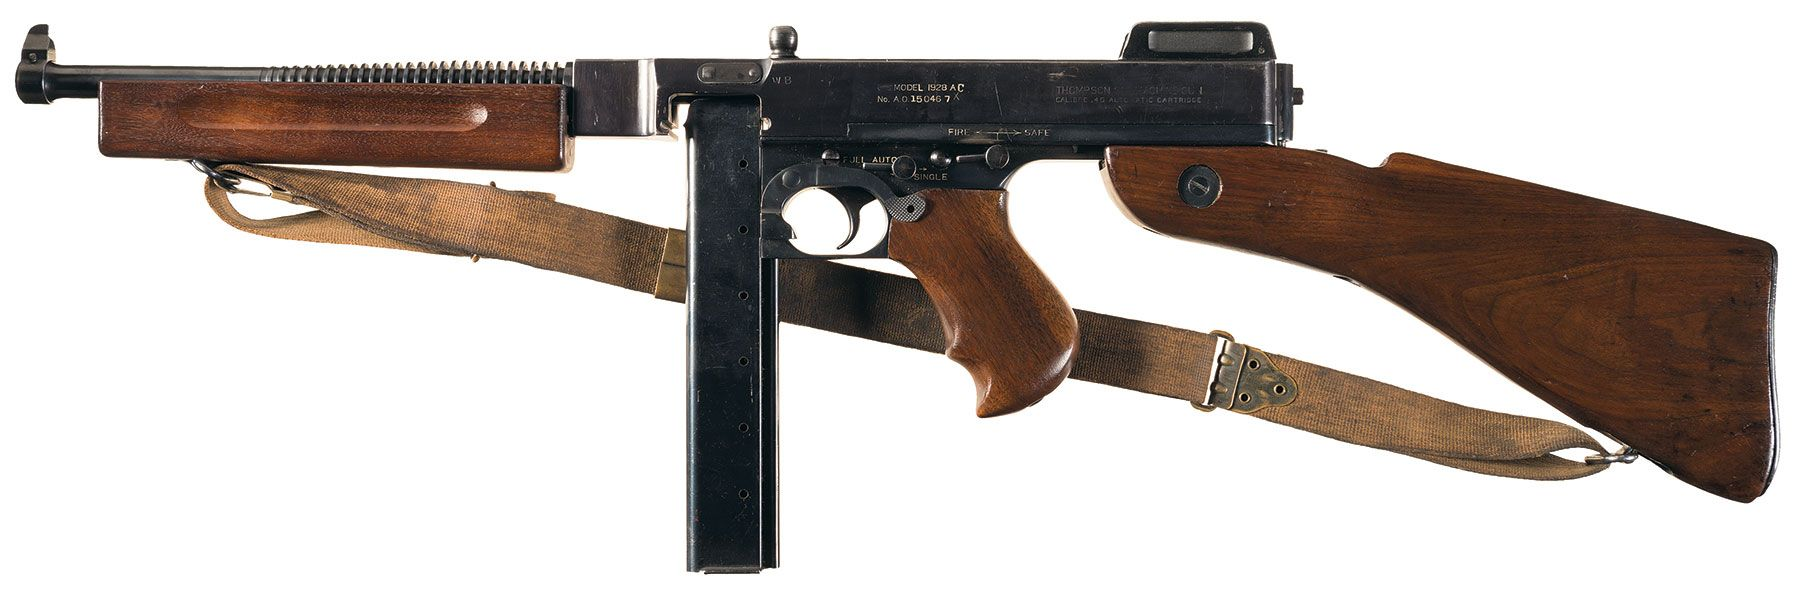 Class III/Fully Automatic M1928 Thompson SMG